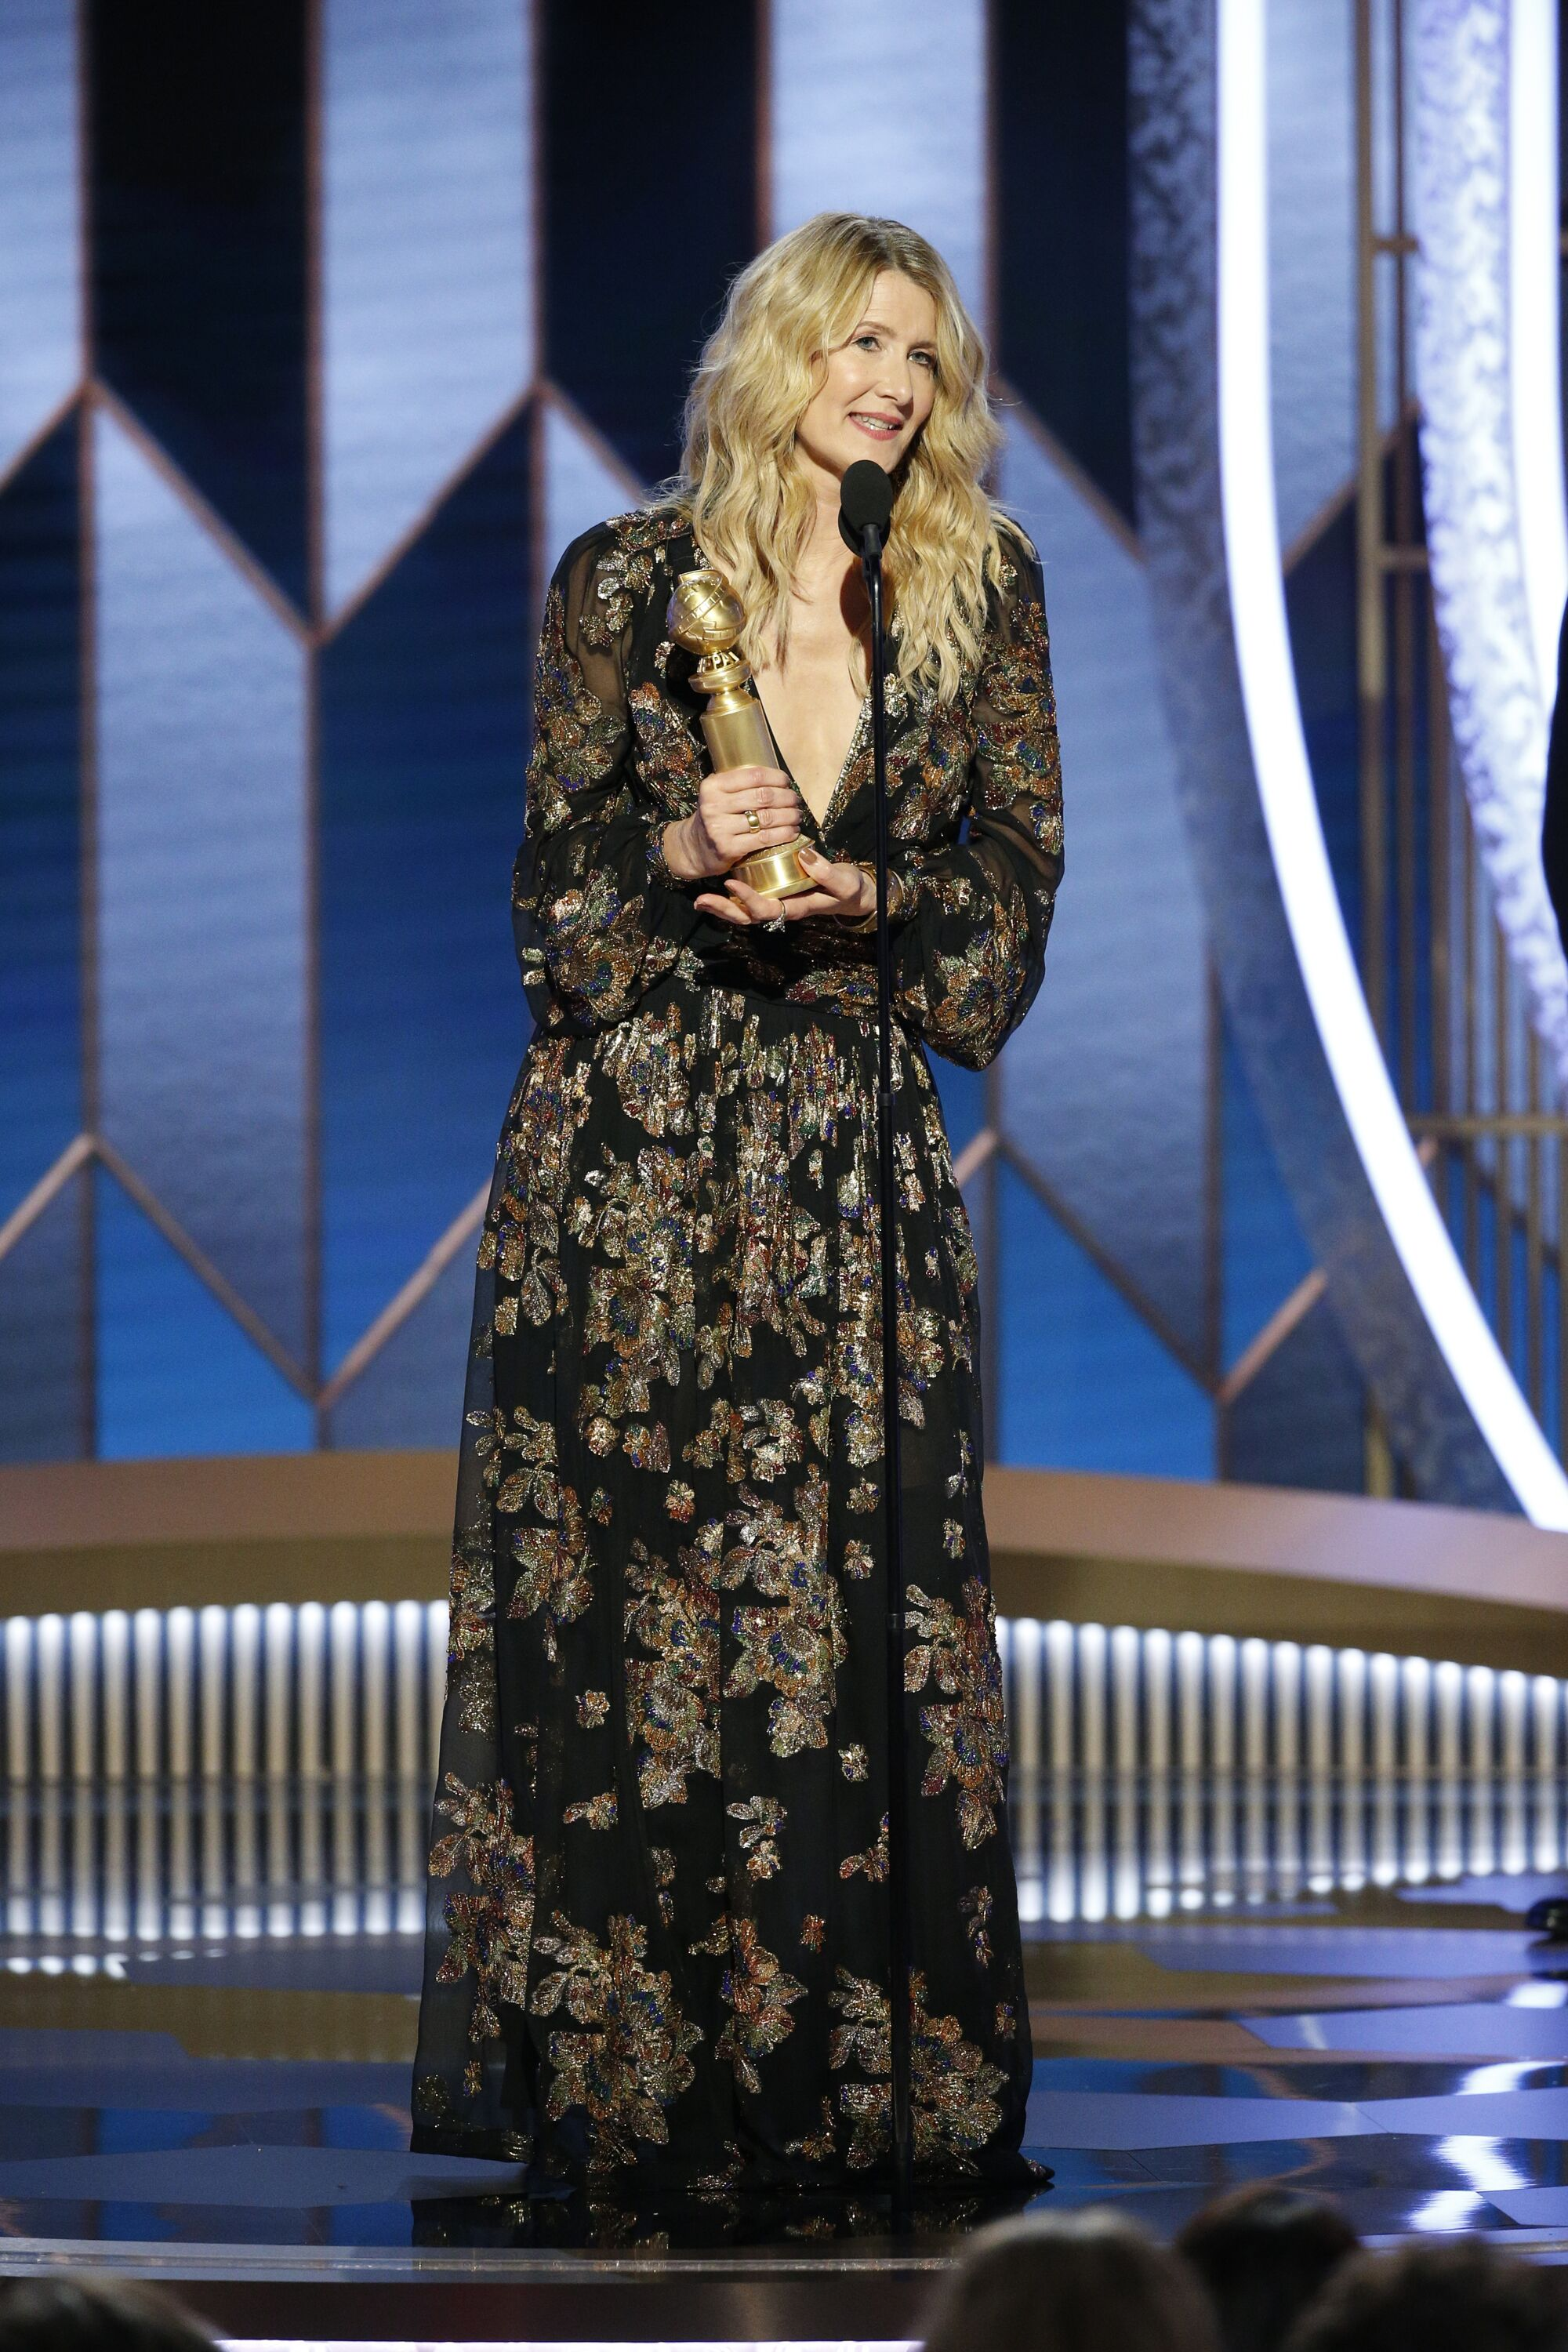 Laura Dern on stage at the 77th Annual Golden Globe Awards on January 5, 2020. |  Photo: Paul Drinkwater / Getty Images